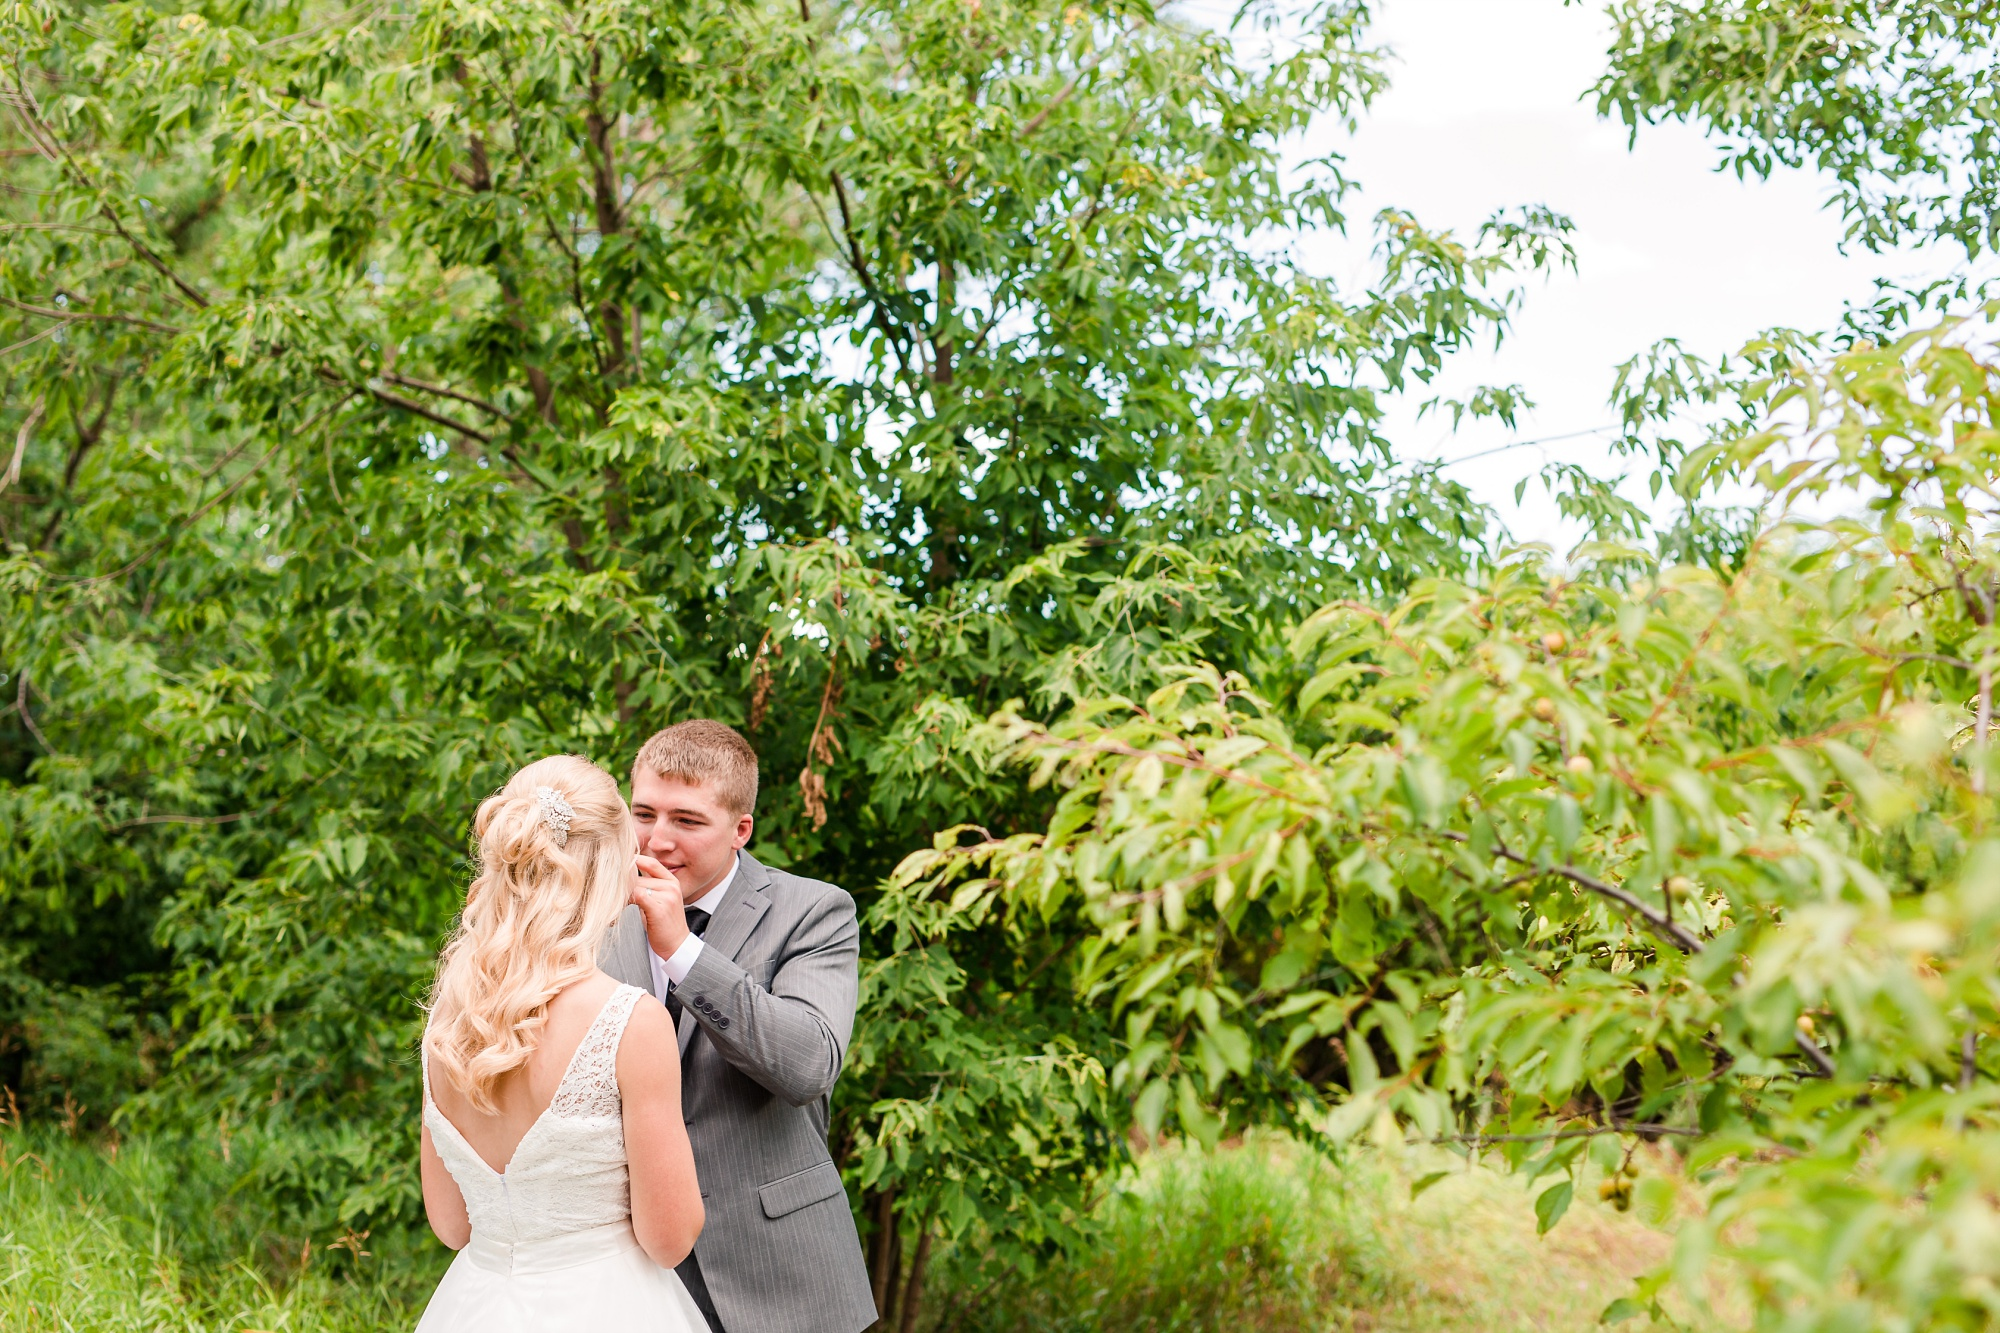 Backyard Frazee, MN Wedding with Frazee Event Center Reception by Amber Langerud | Ellie & Erik